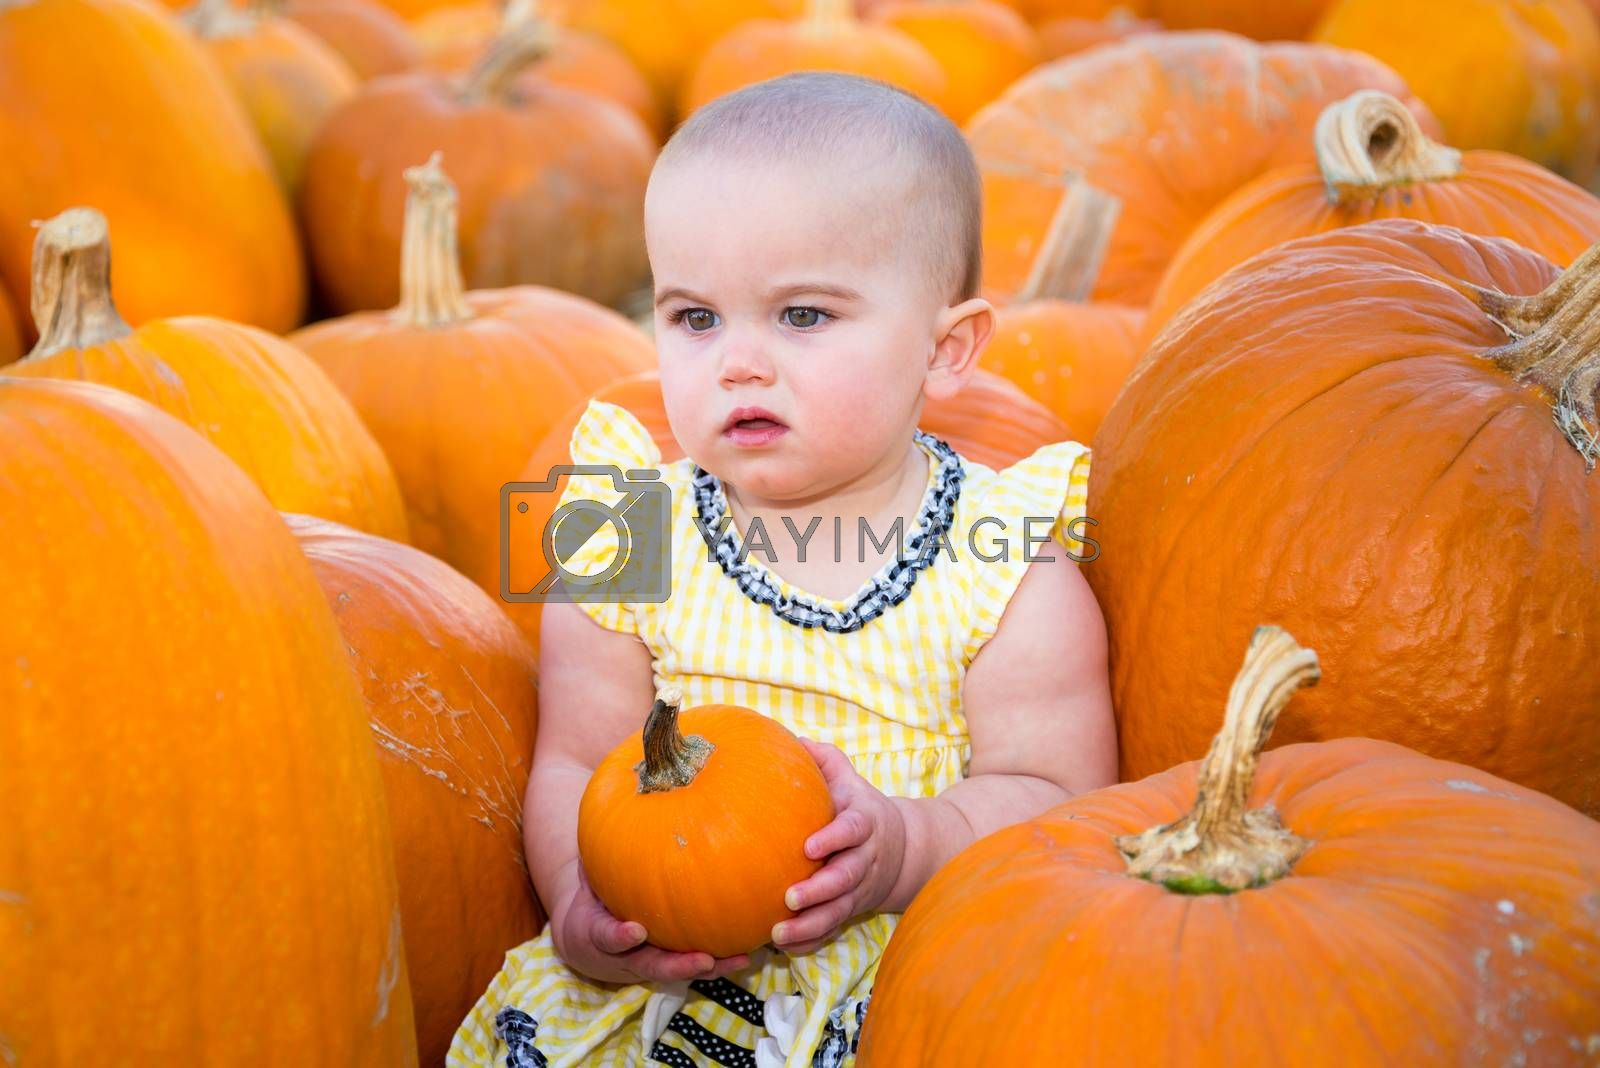 Adorable Pumpkin Patch Baby holding a small pumpkin while looking confused or unimpressed